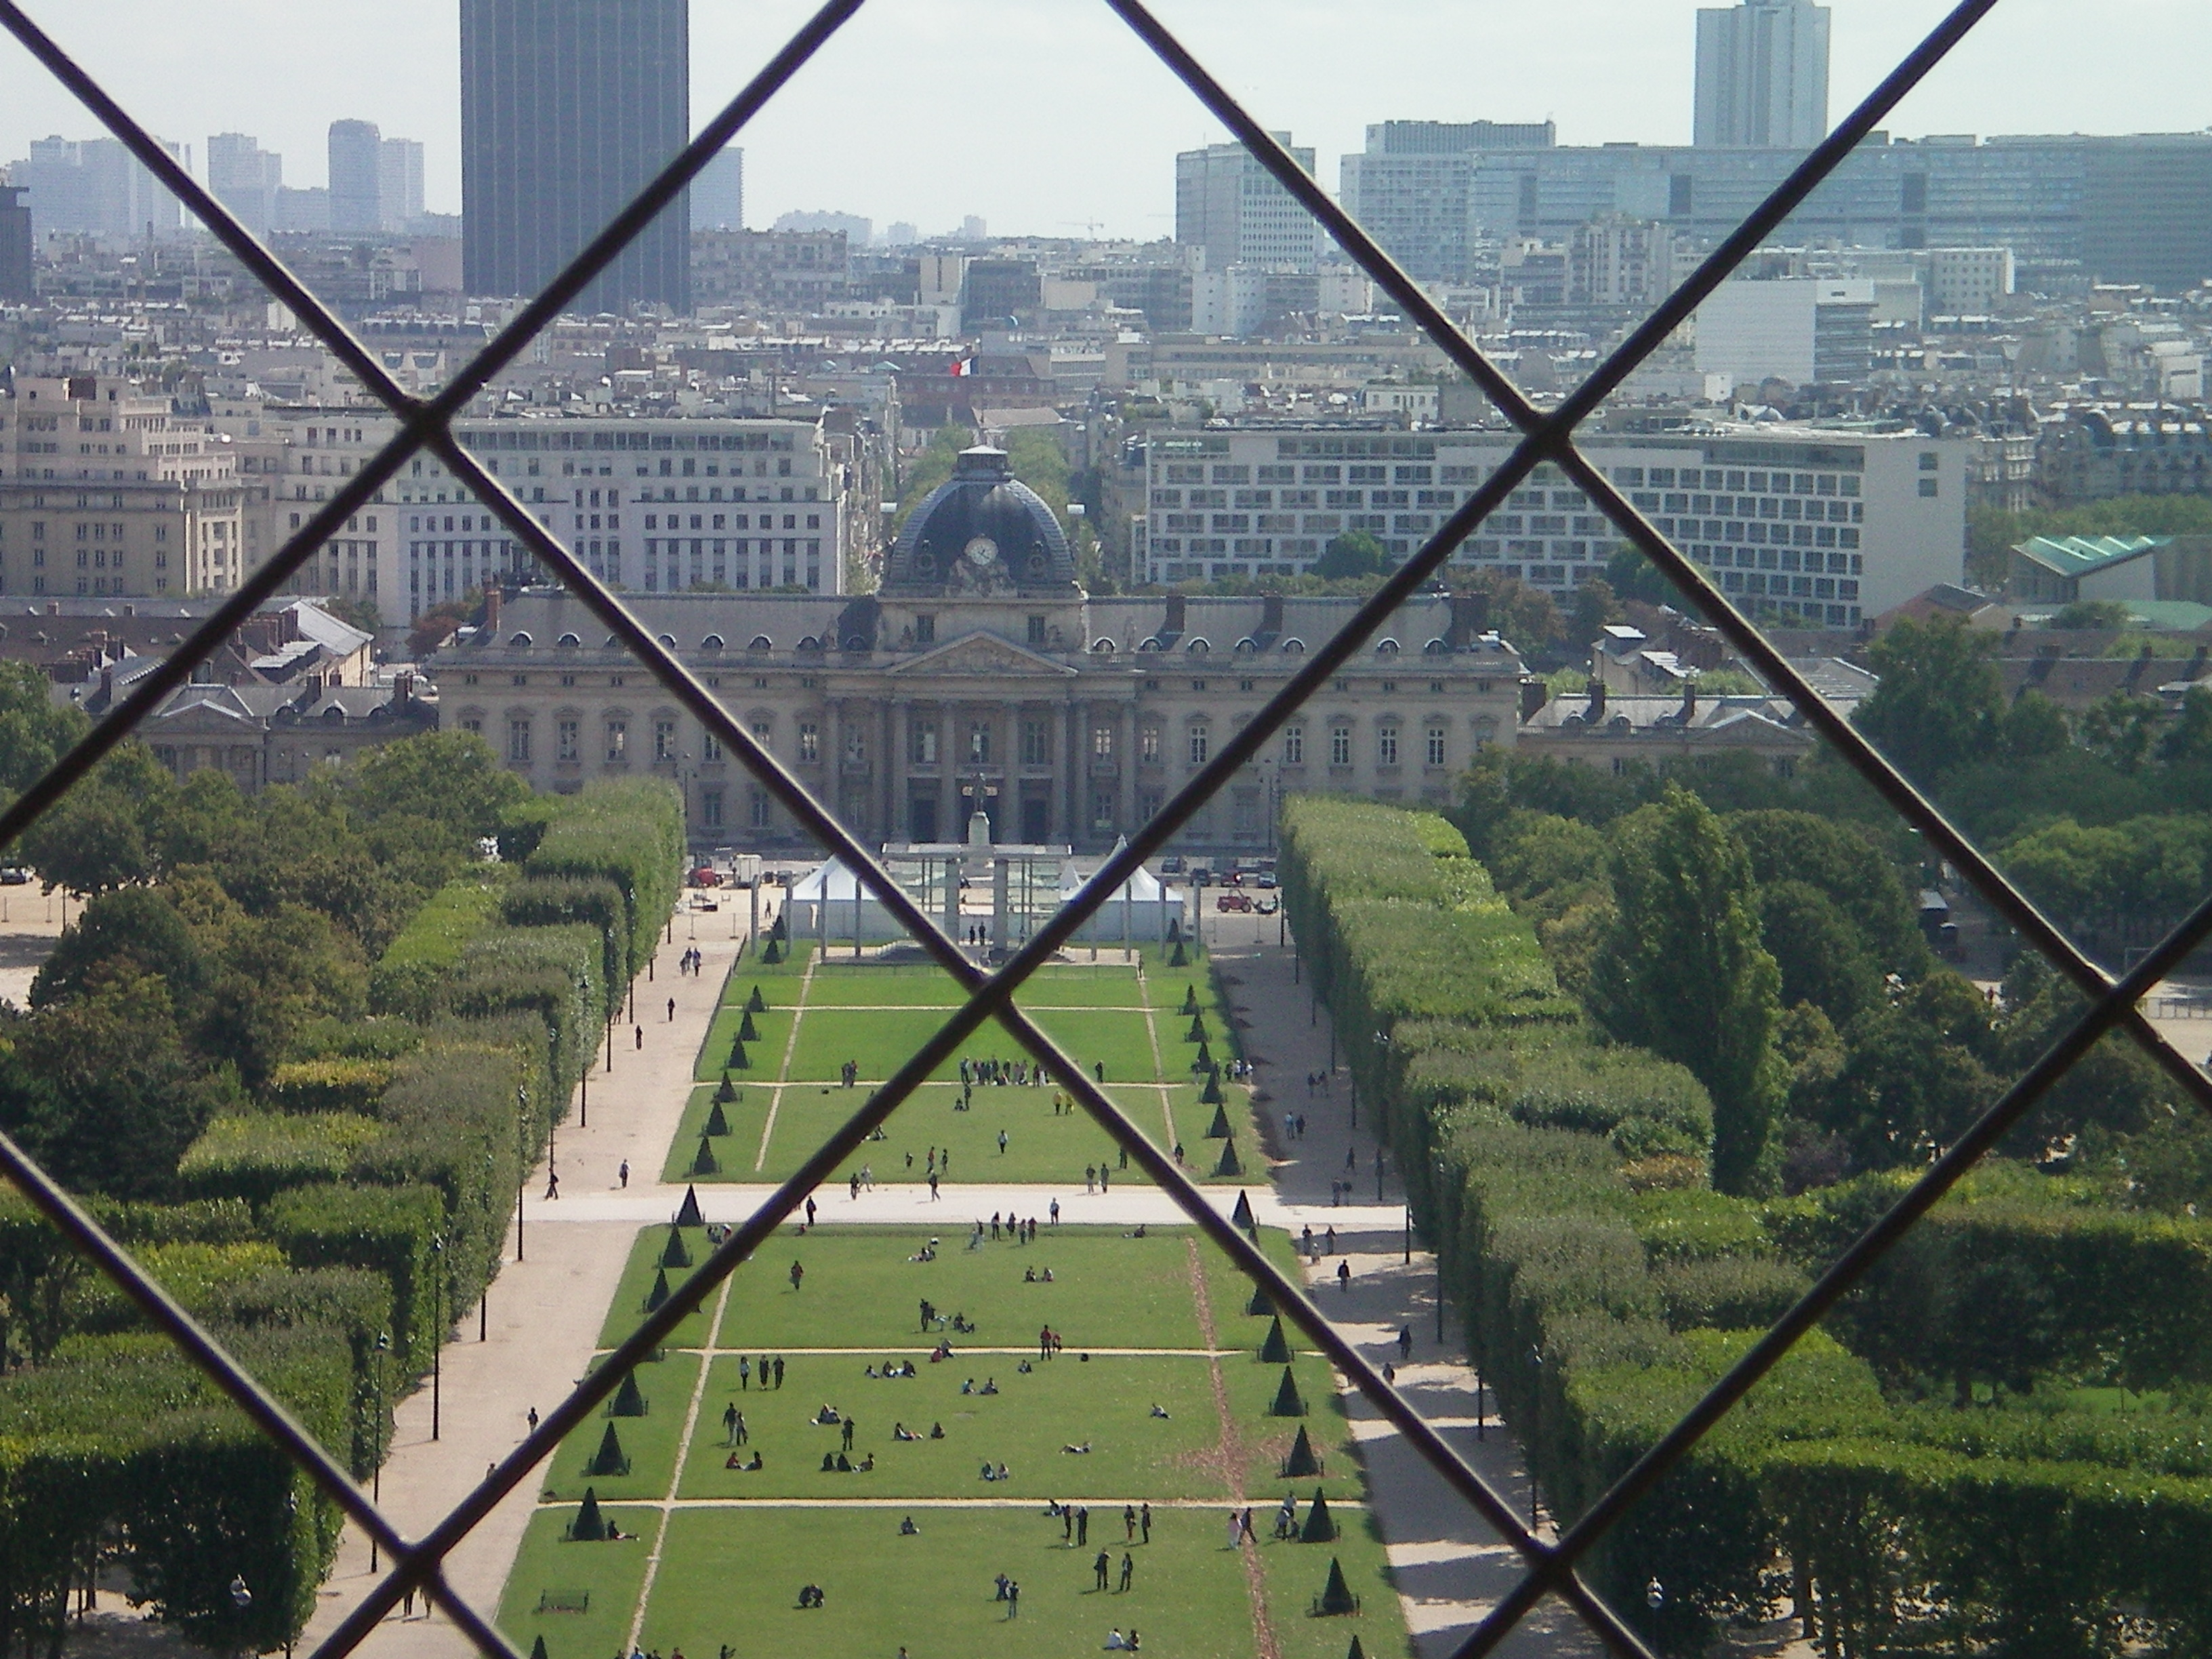 View from the tower in Paris